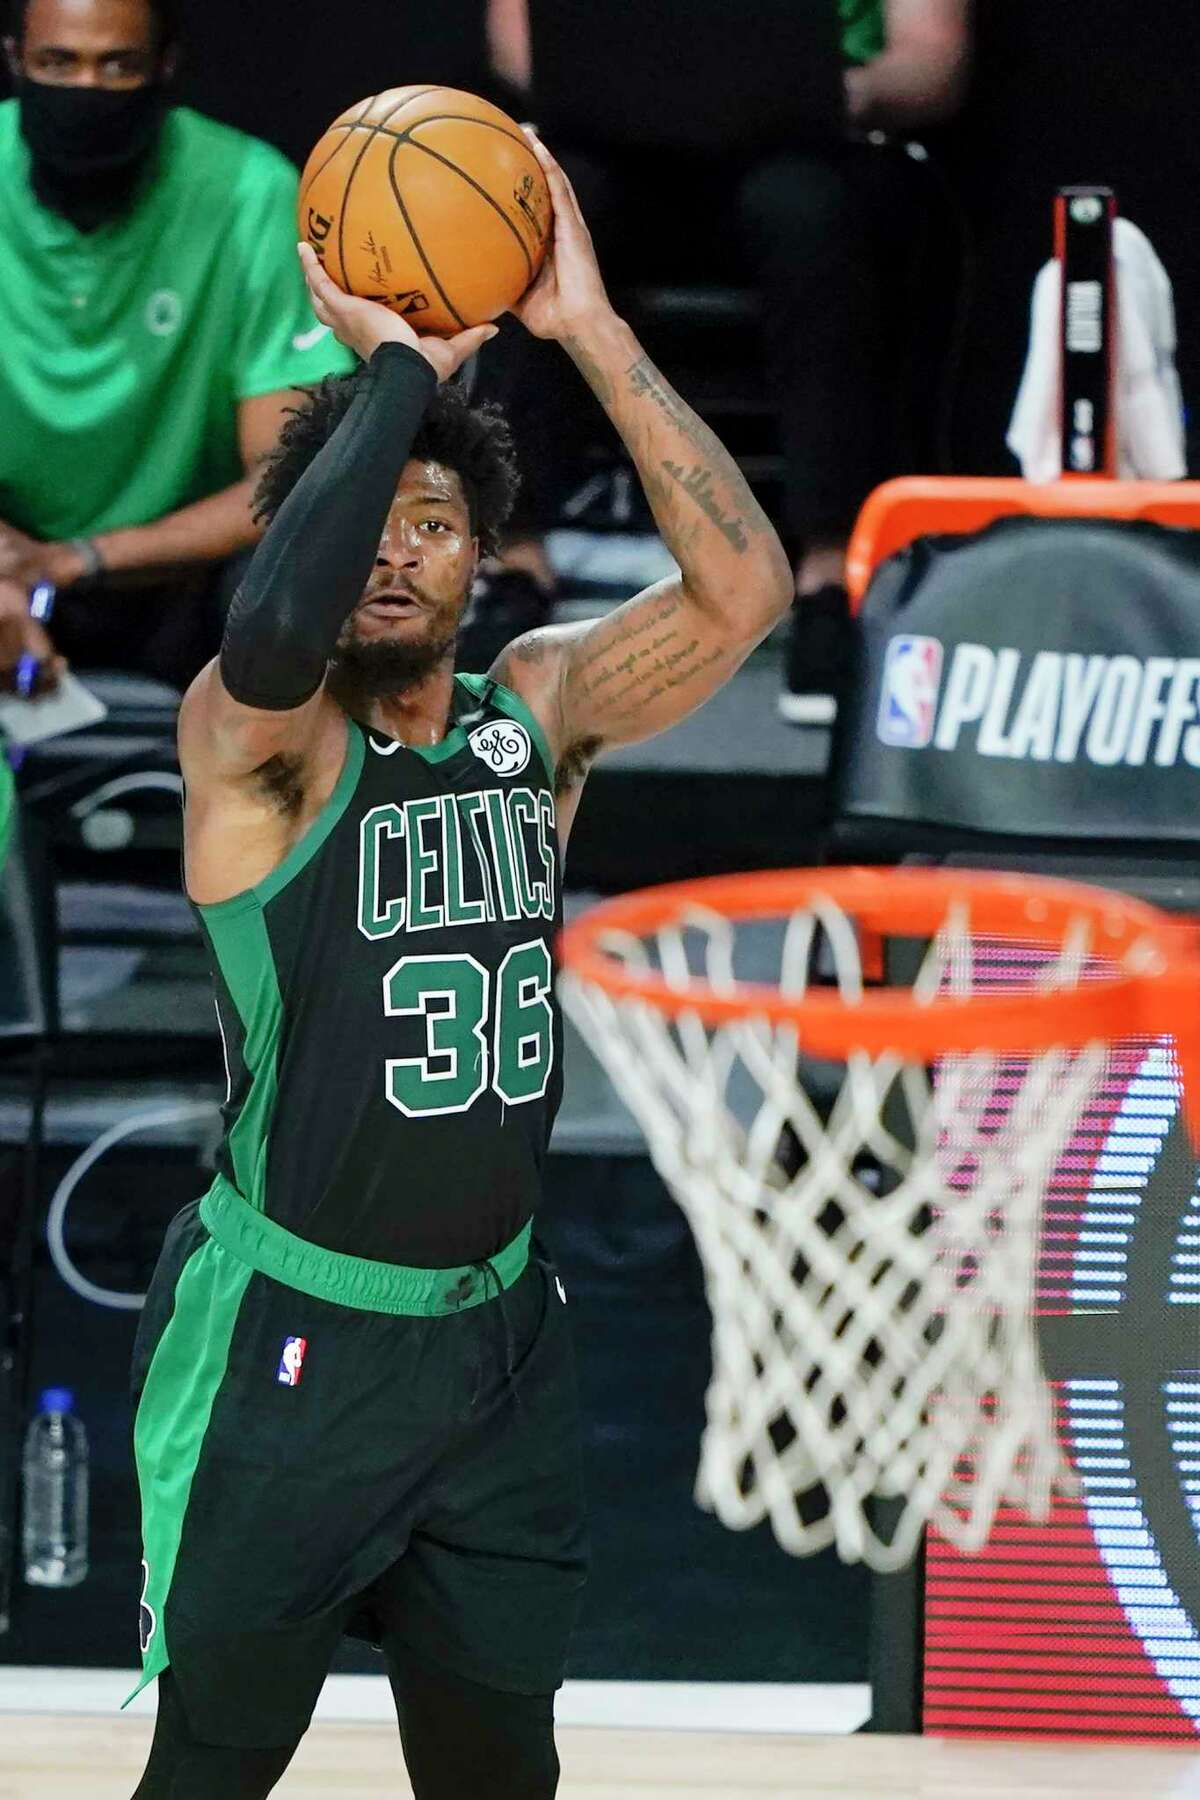 Boston Celtics' Marcus Smart shoots against the Toronto Raptors during the second half of an NBA basketball conference semifinal playoff game Sunday, Aug. 30, 2020, in Lake Buena Vista, Fla. (AP Photo/Ashley Landis)